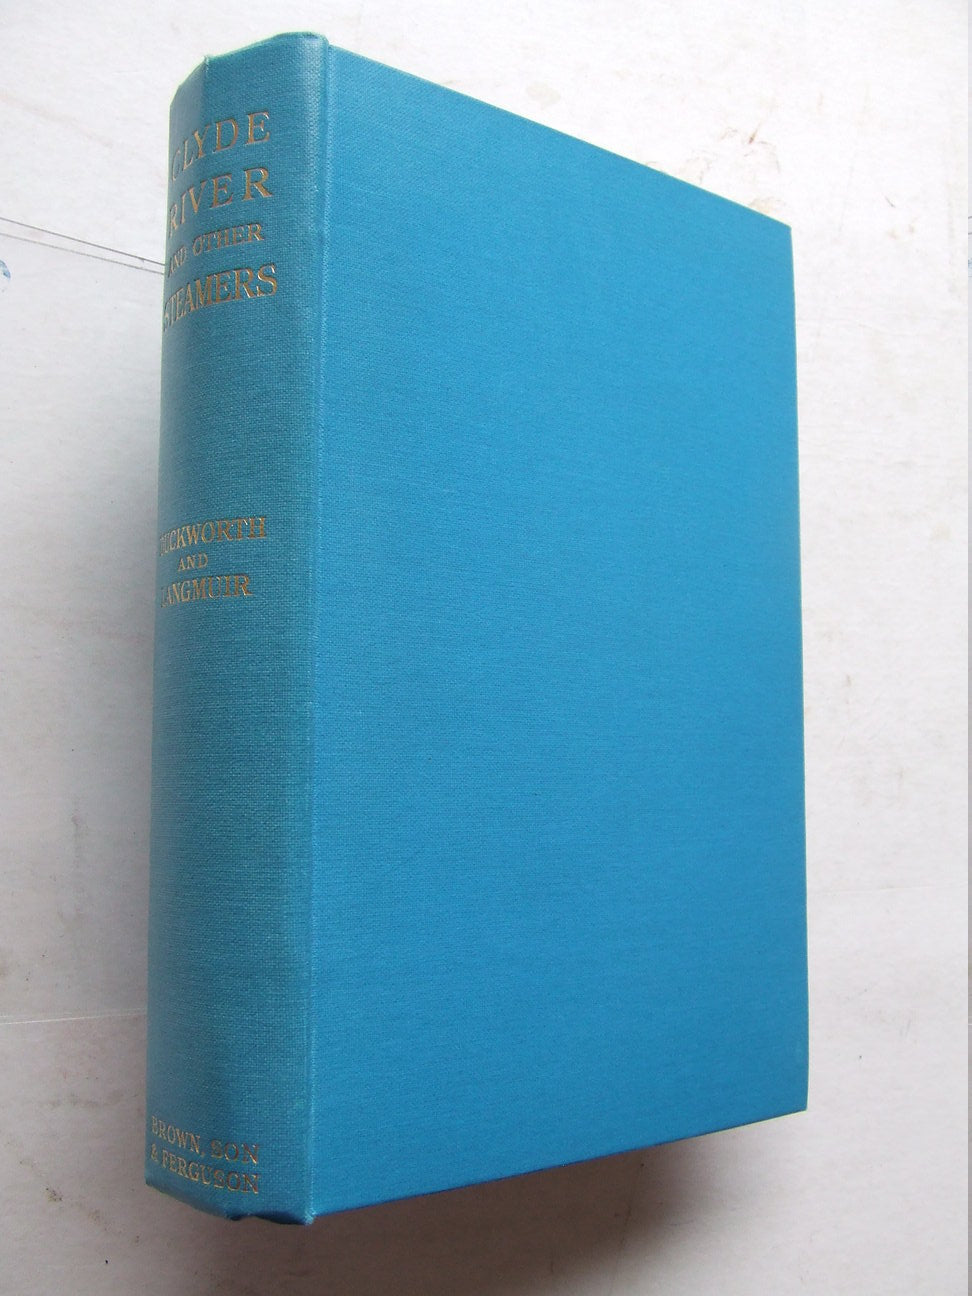 Clyde River and Other Steamers.  1st edition